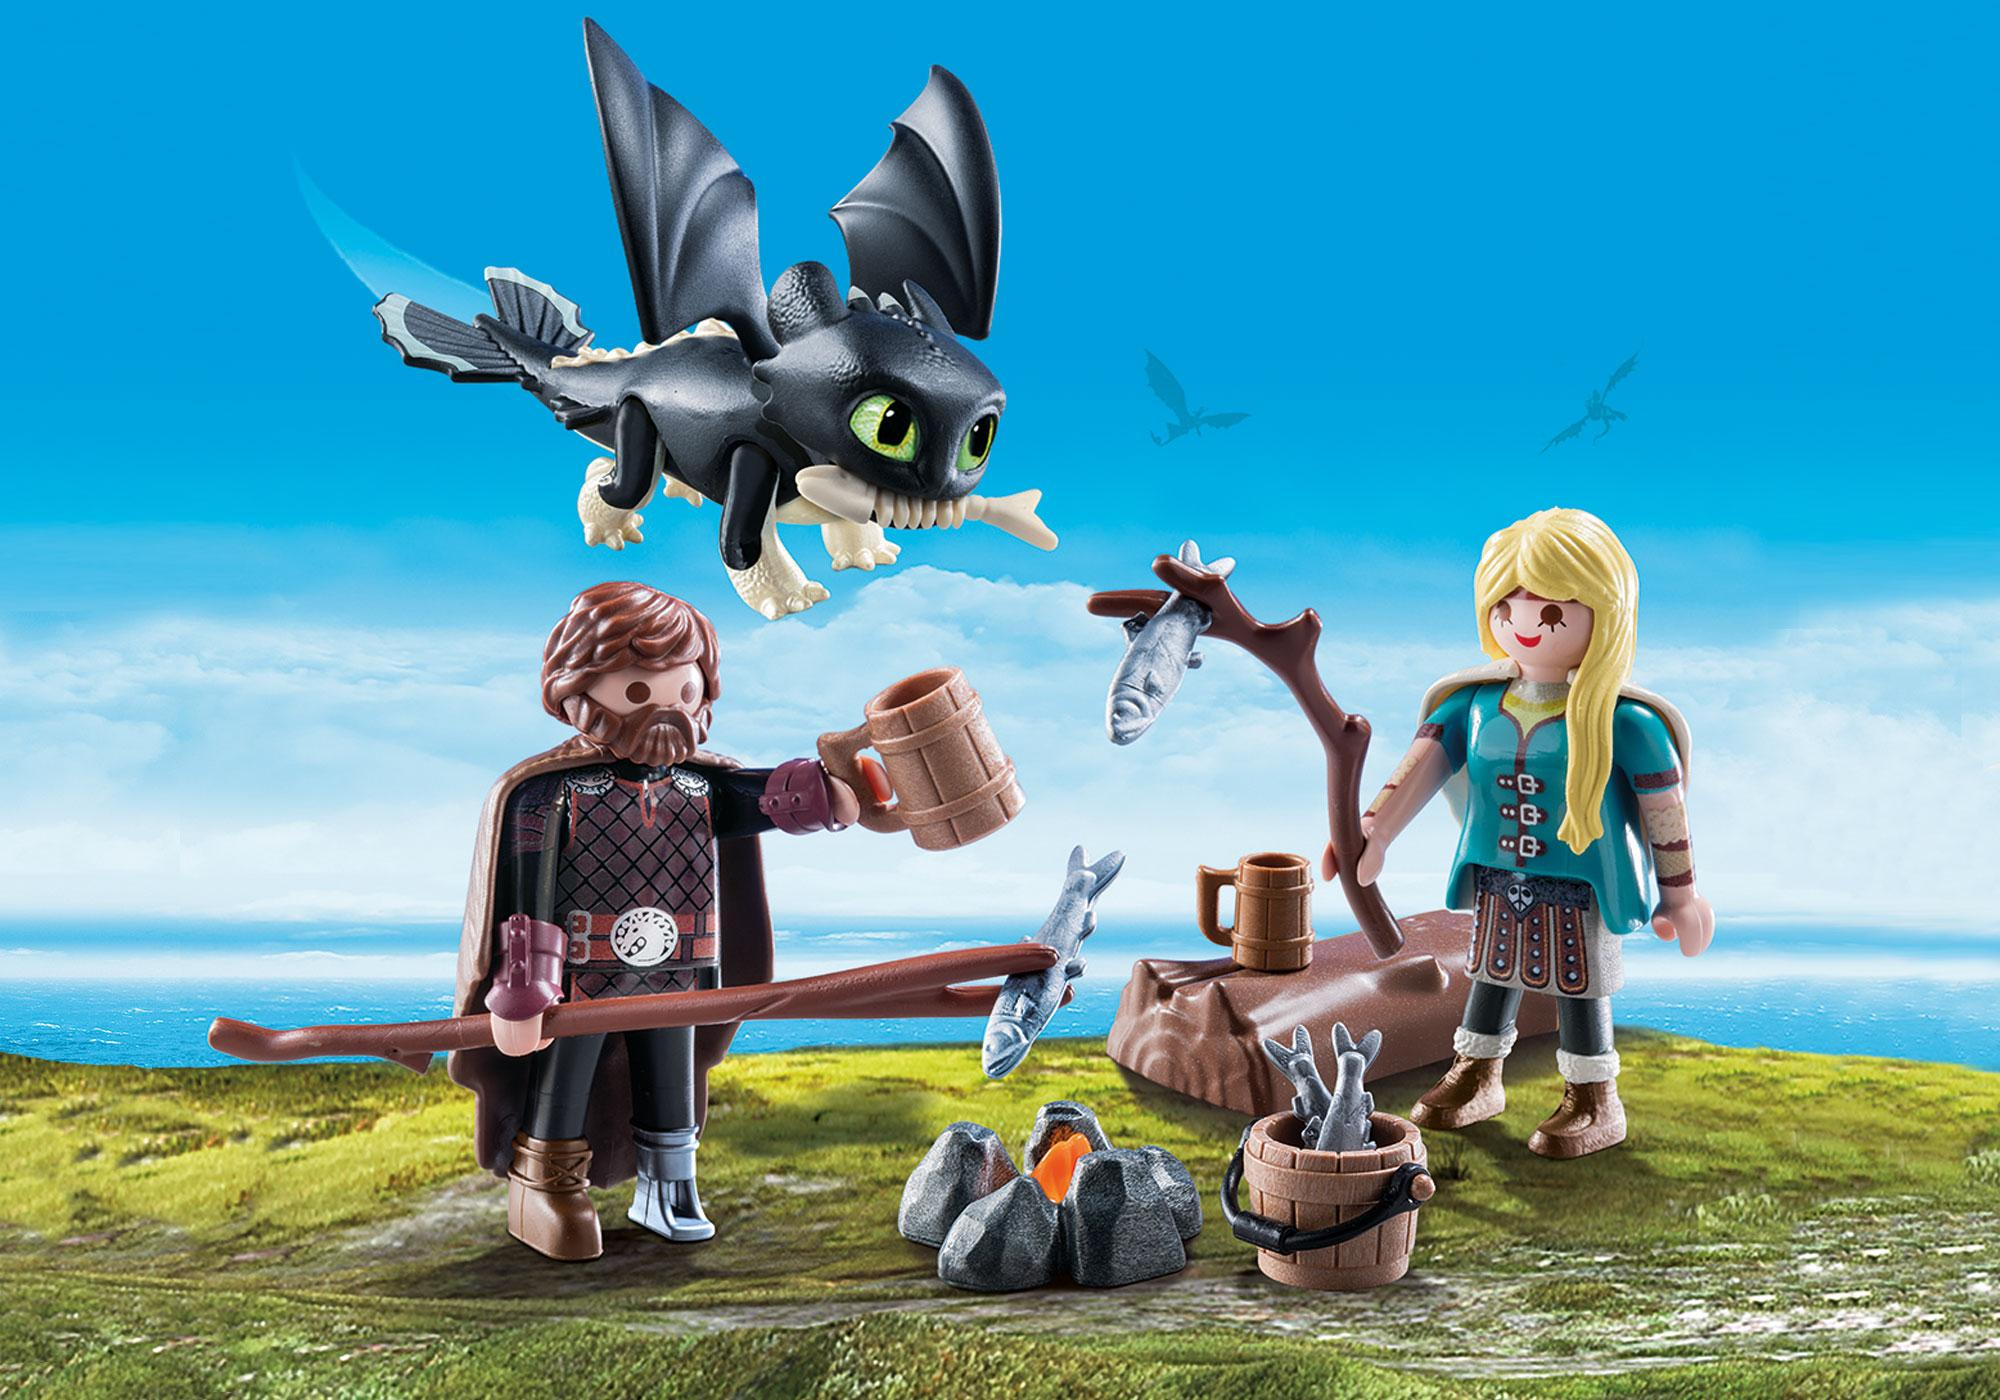 70040_product_detail/Hiccup e Astrid con Baby Dragon